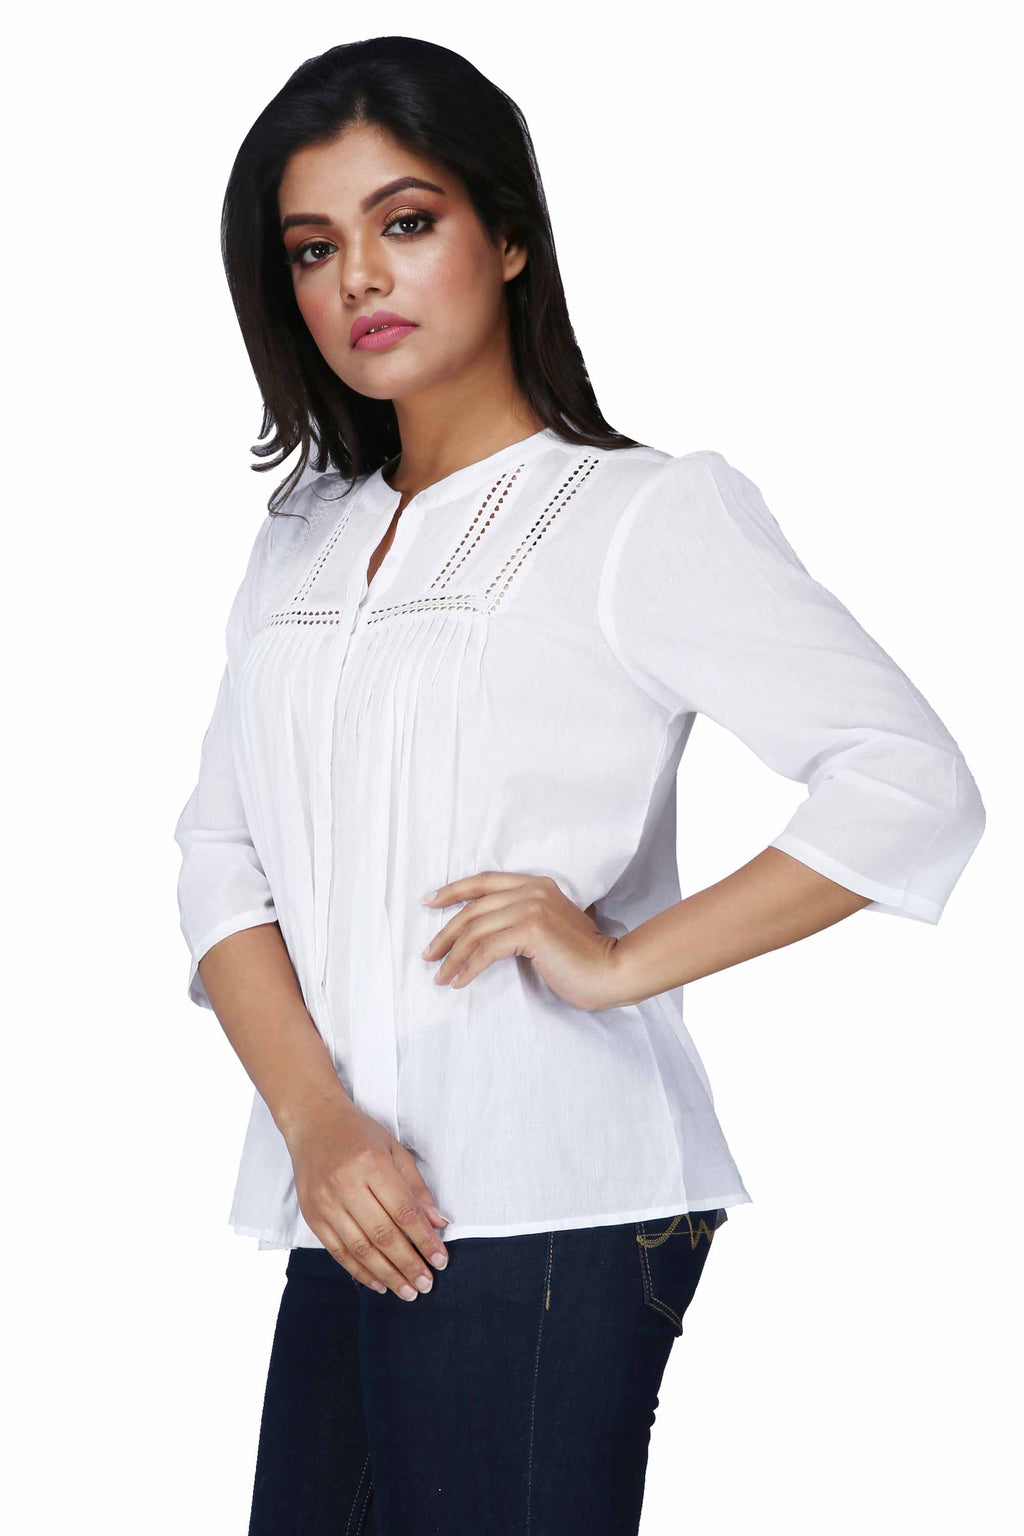 Women's Casual Pintuck Long White Top - K1385